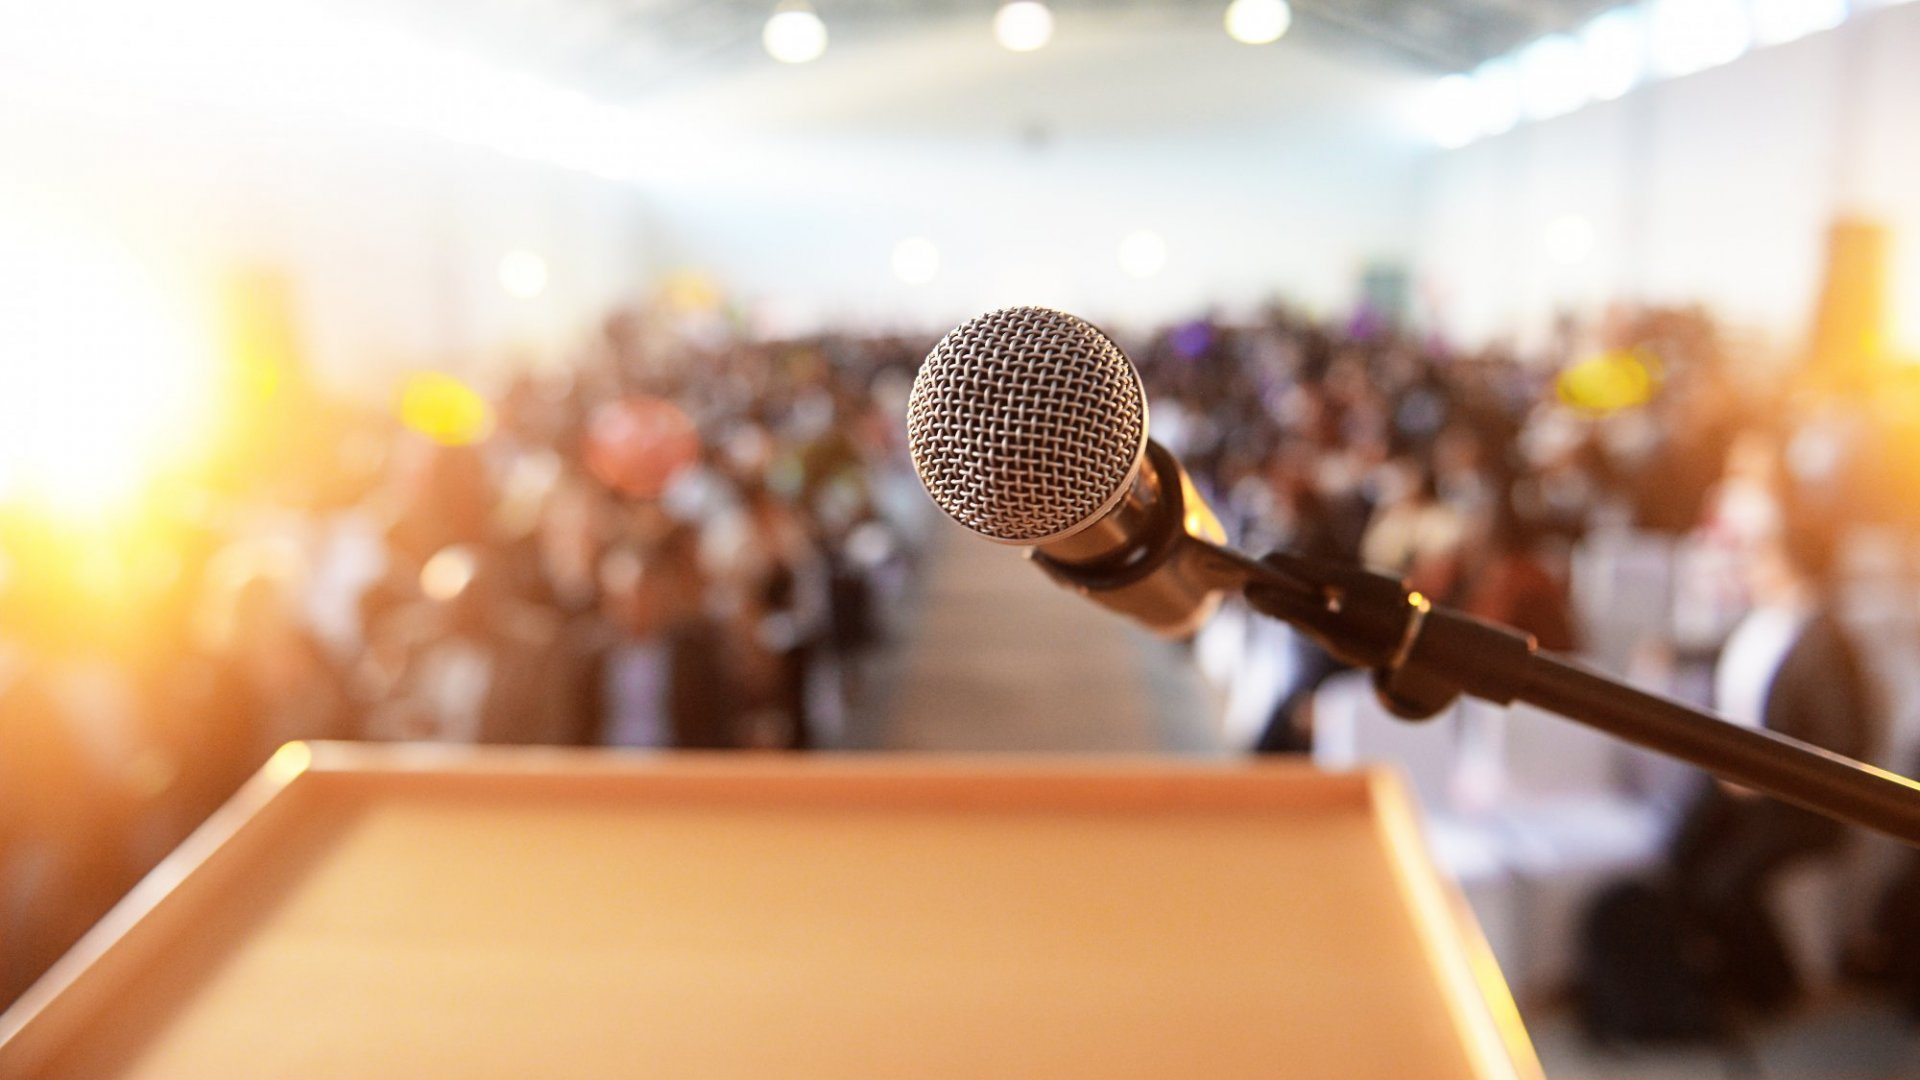 The most important part of any speech is the speech you give yourself before taking the stage.